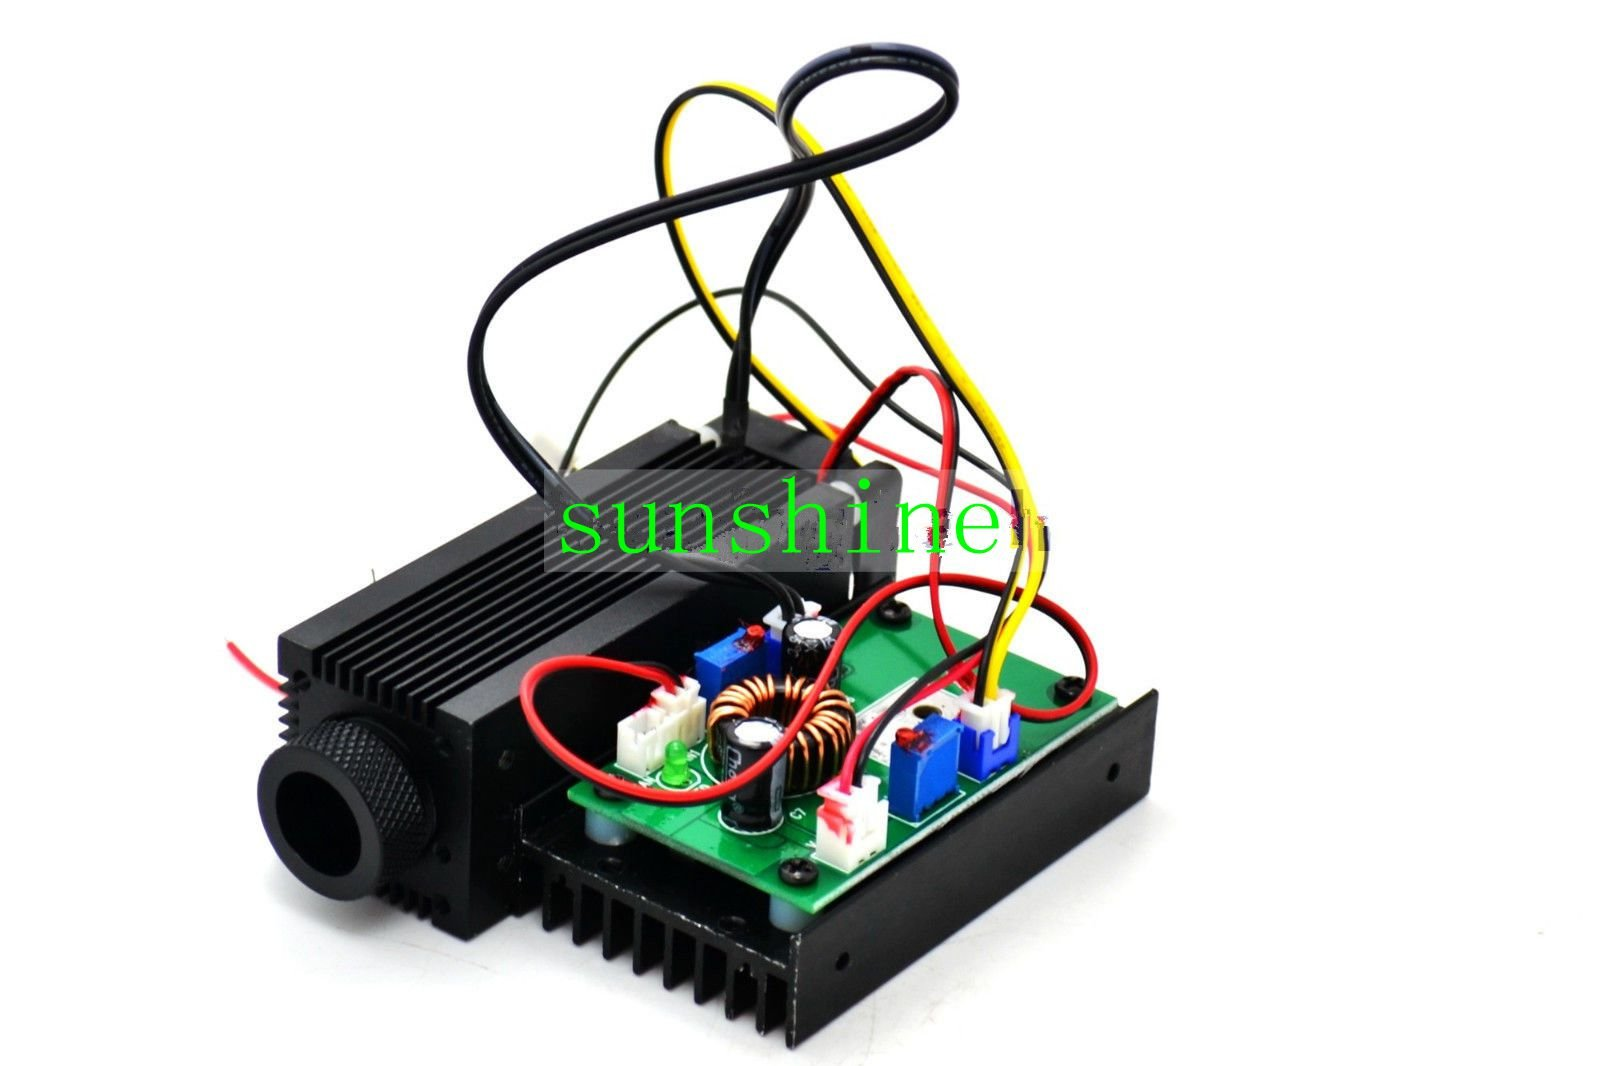 Focusable 940nm 0.8W 800mw IR Infrared Laser Module 12.0VDC w/ 1000mW Diode & FAC